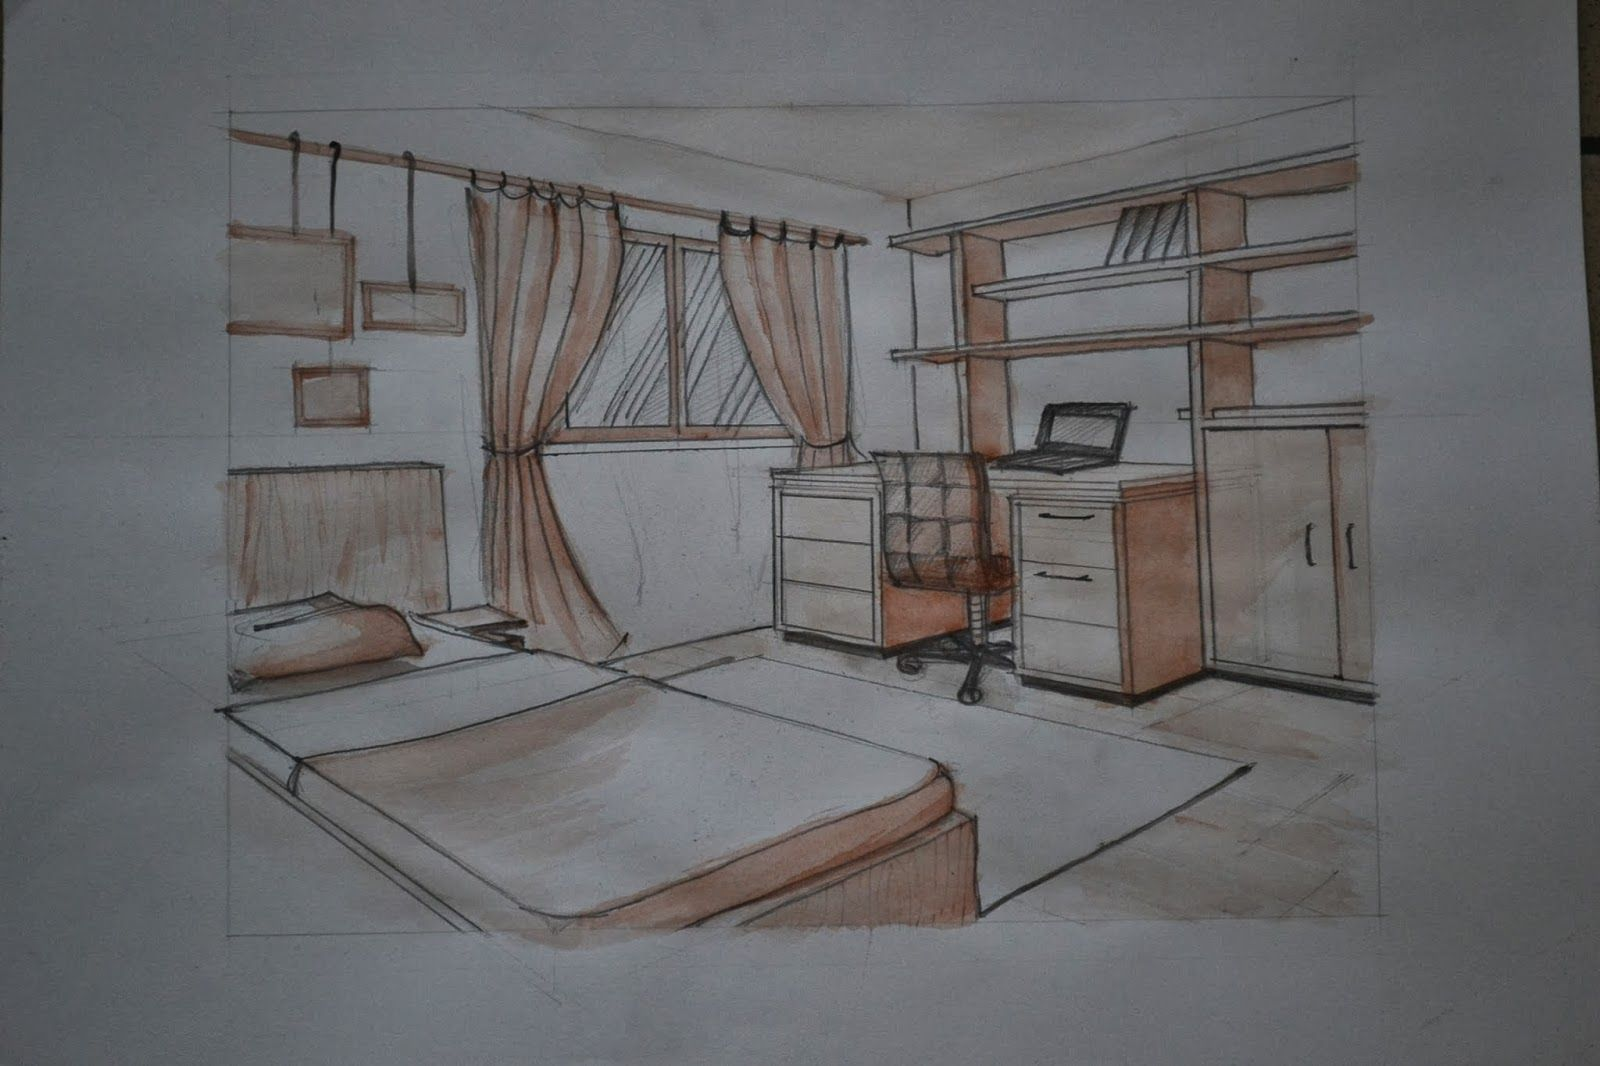 Pin by mermermia on Perspective Drawings Interior